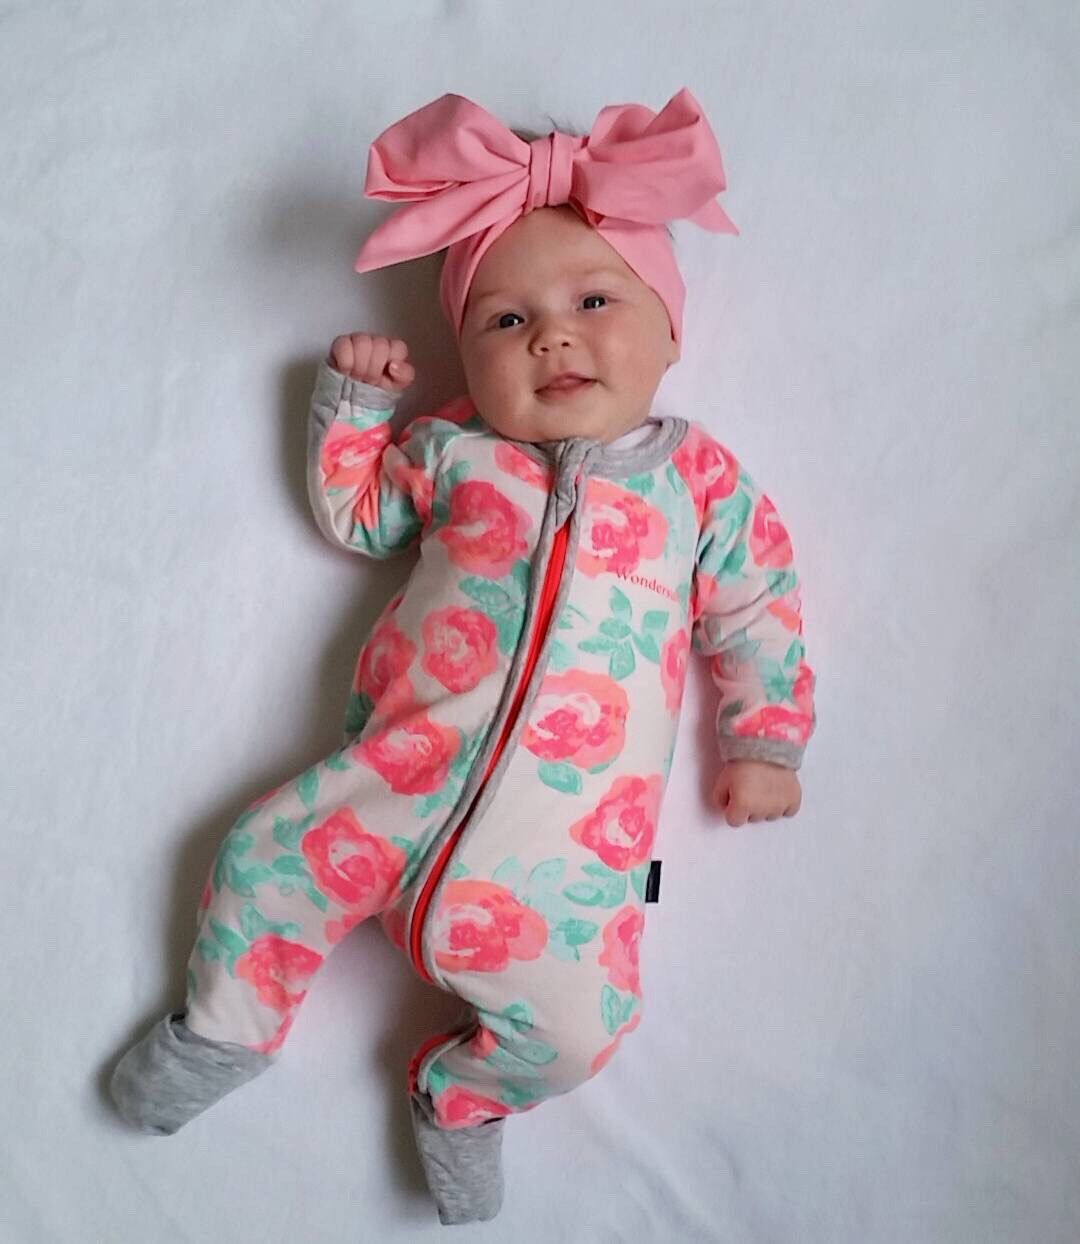 Newborn Baby Rose One Piece Outfit Winter Fall Long Sleeve Romper ... 4f08f75c7